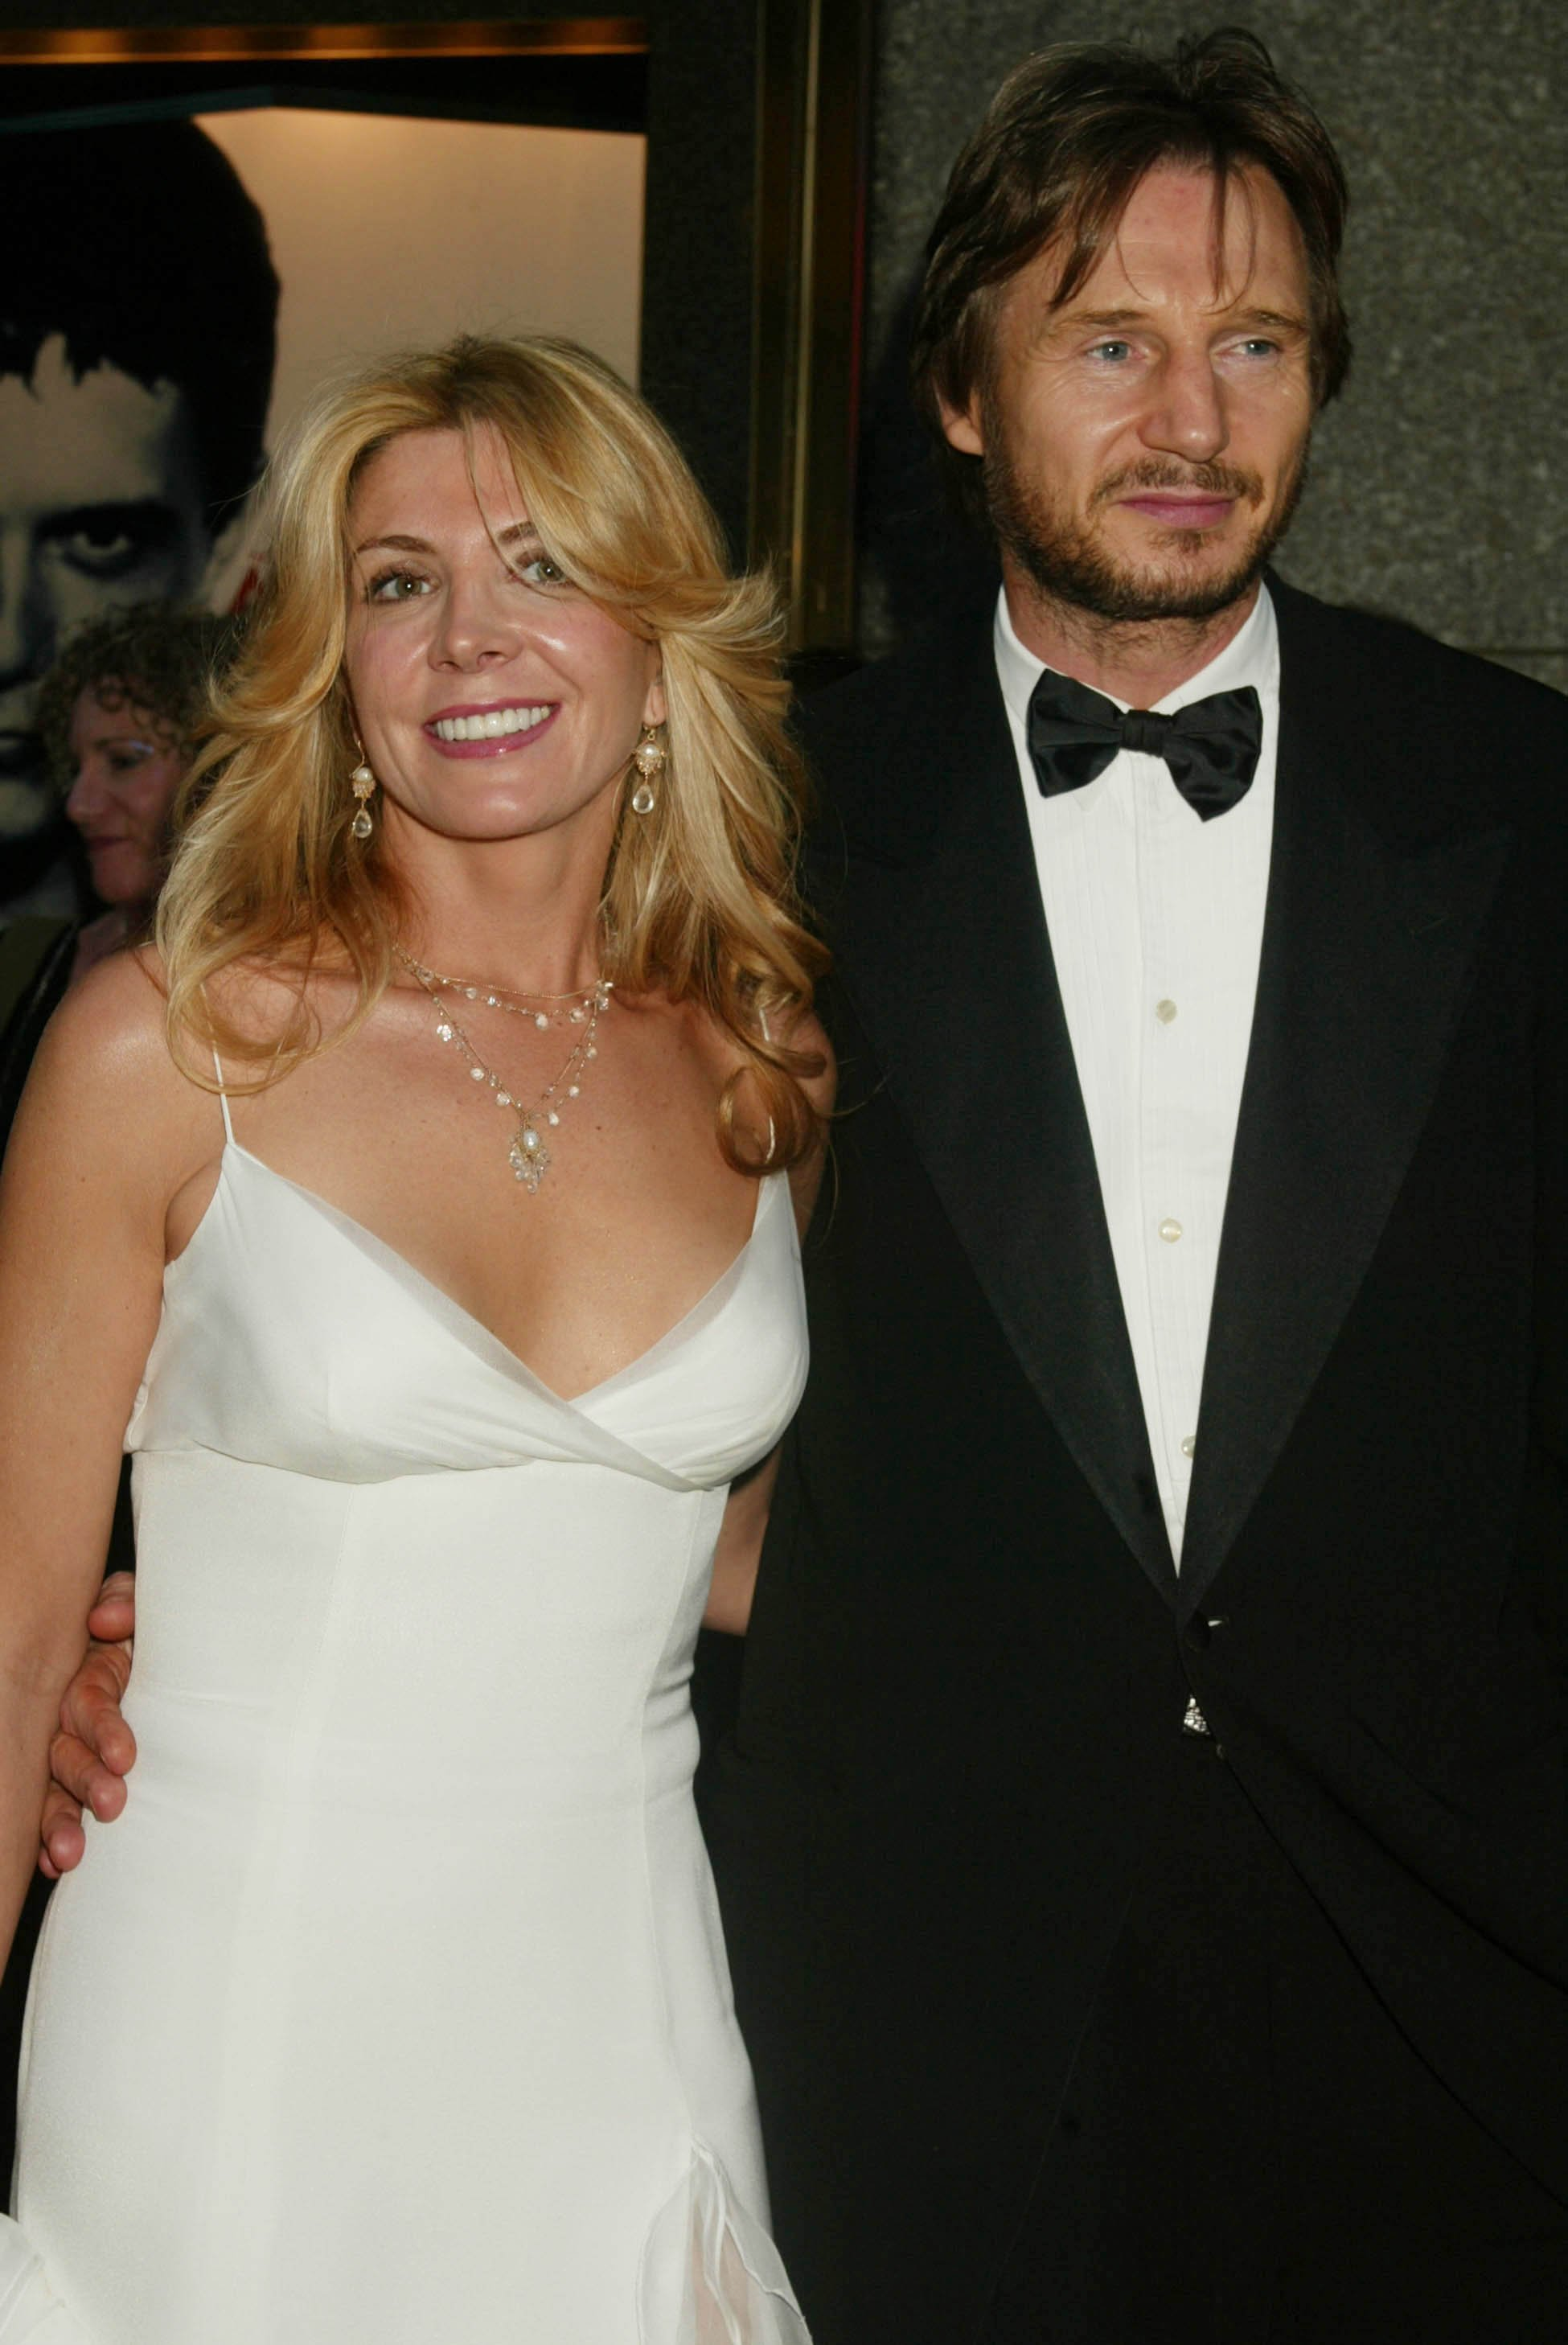 Natasha Richardson and Liam Neeson arrive for the 56th Annual Tony Awards in 2002. | Photo: Getty Images